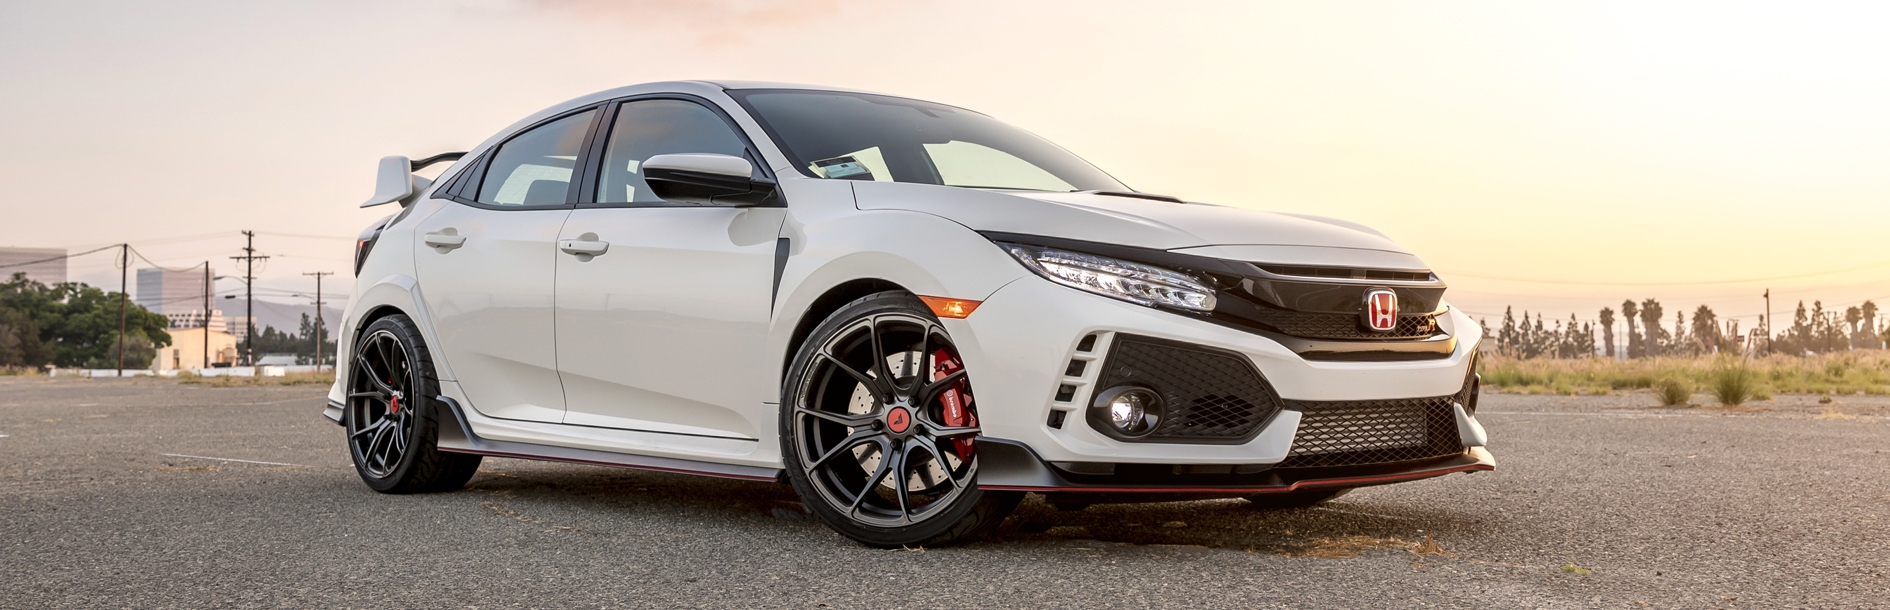 Honda Accord Sport Rims >> Honda Civic type r Alloy Wheels & Performance Tyres - Buy Alloys at Wheelbase